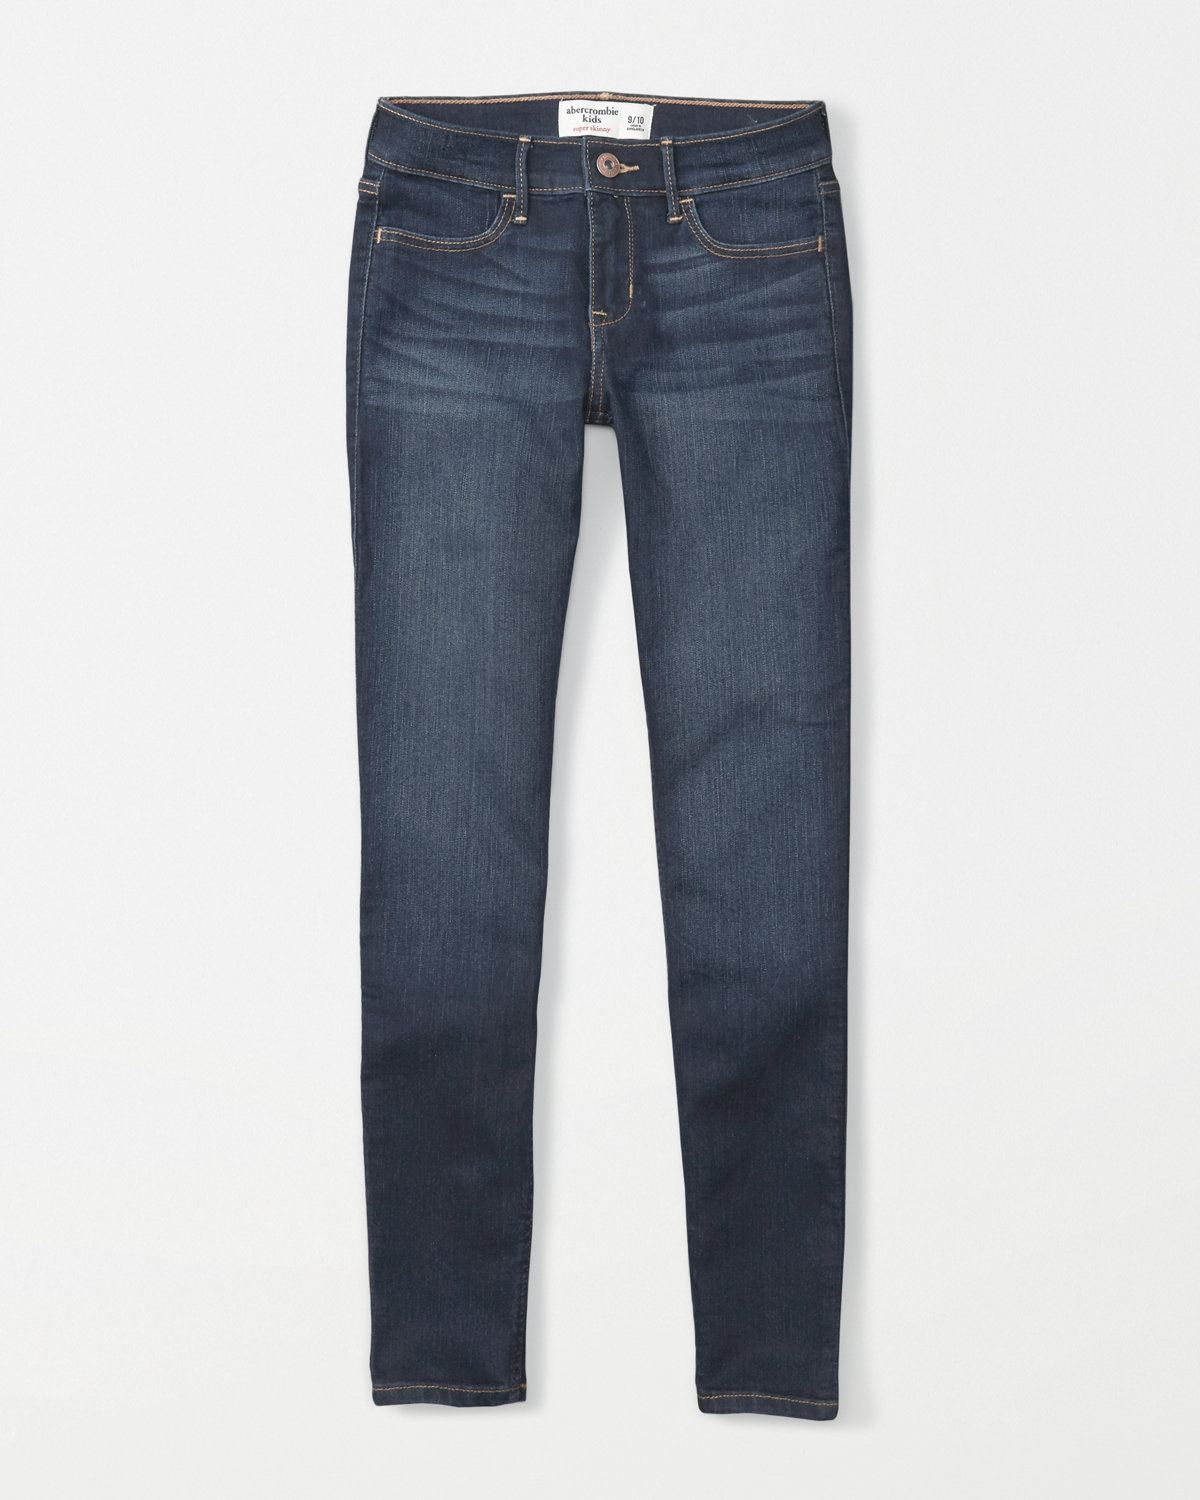 girls super skinny jeans girls bottoms abercrombiecom